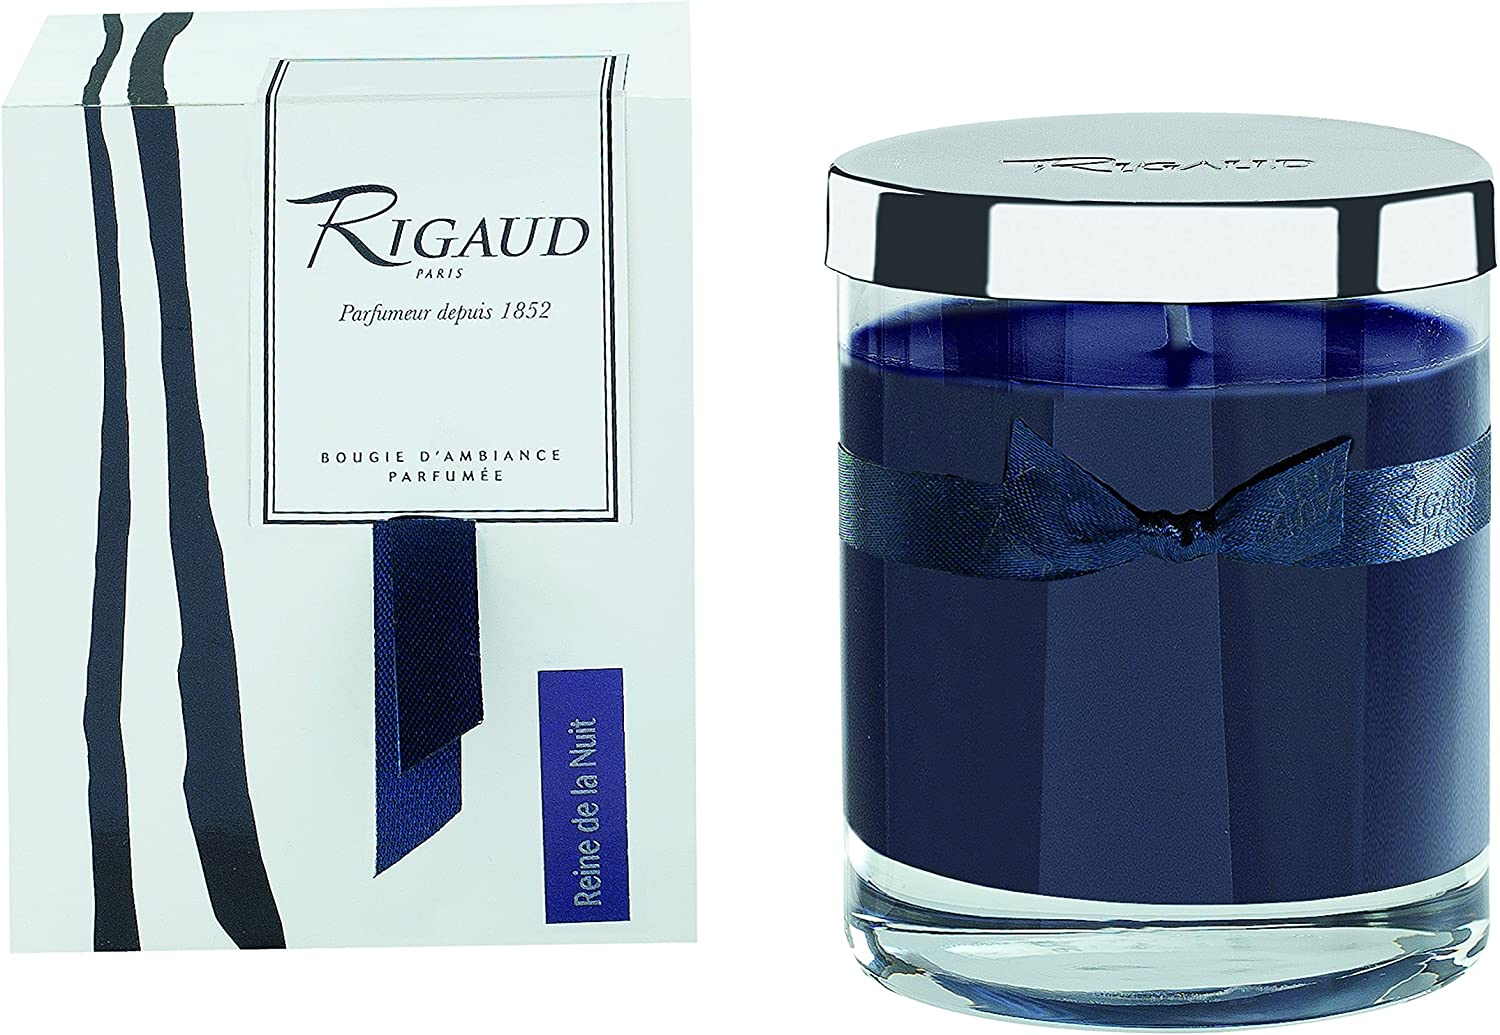 Rigaud Paris, Chevrefeuille (Honeysuckle) Bougie D'ambiance Parfumee, Medium Candle  Modele Complet  with Metal Silver Lid, Deep bluee, 5.6 Oz, 60 Hour, Made in France